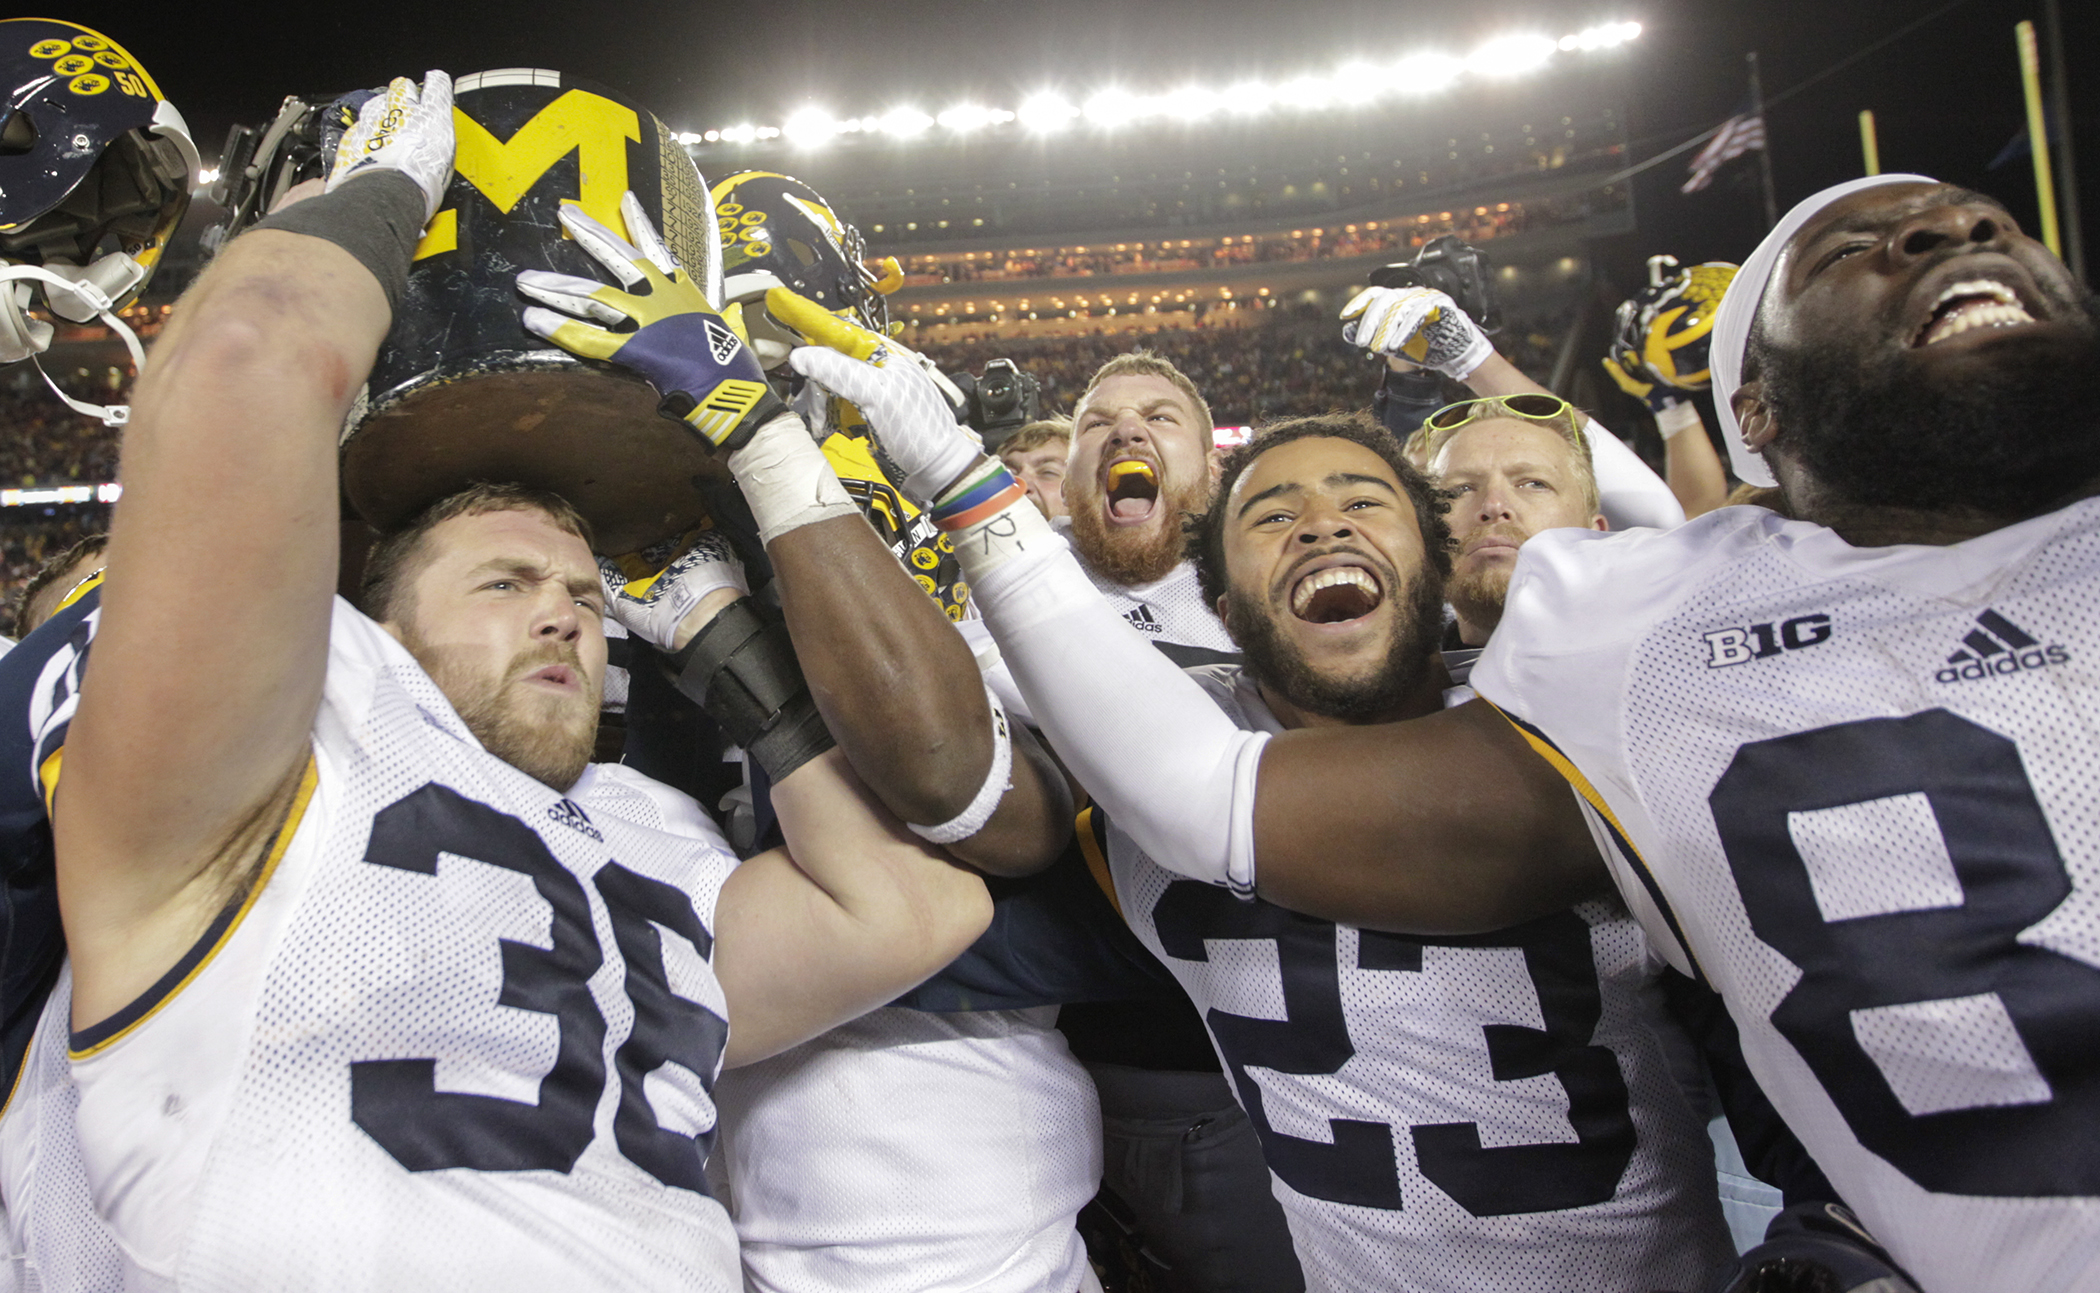 Michigan's Joe Kerridge (36), Jordan Glasgow (23) and A.J. Williams (84) carry the Little Brown Jug off the field after beating Minnesota 29-26 in an NCAA college football game Saturday, Oct. 31, 2015, in Minneapolis.(AP Photo/Paul Battaglia)